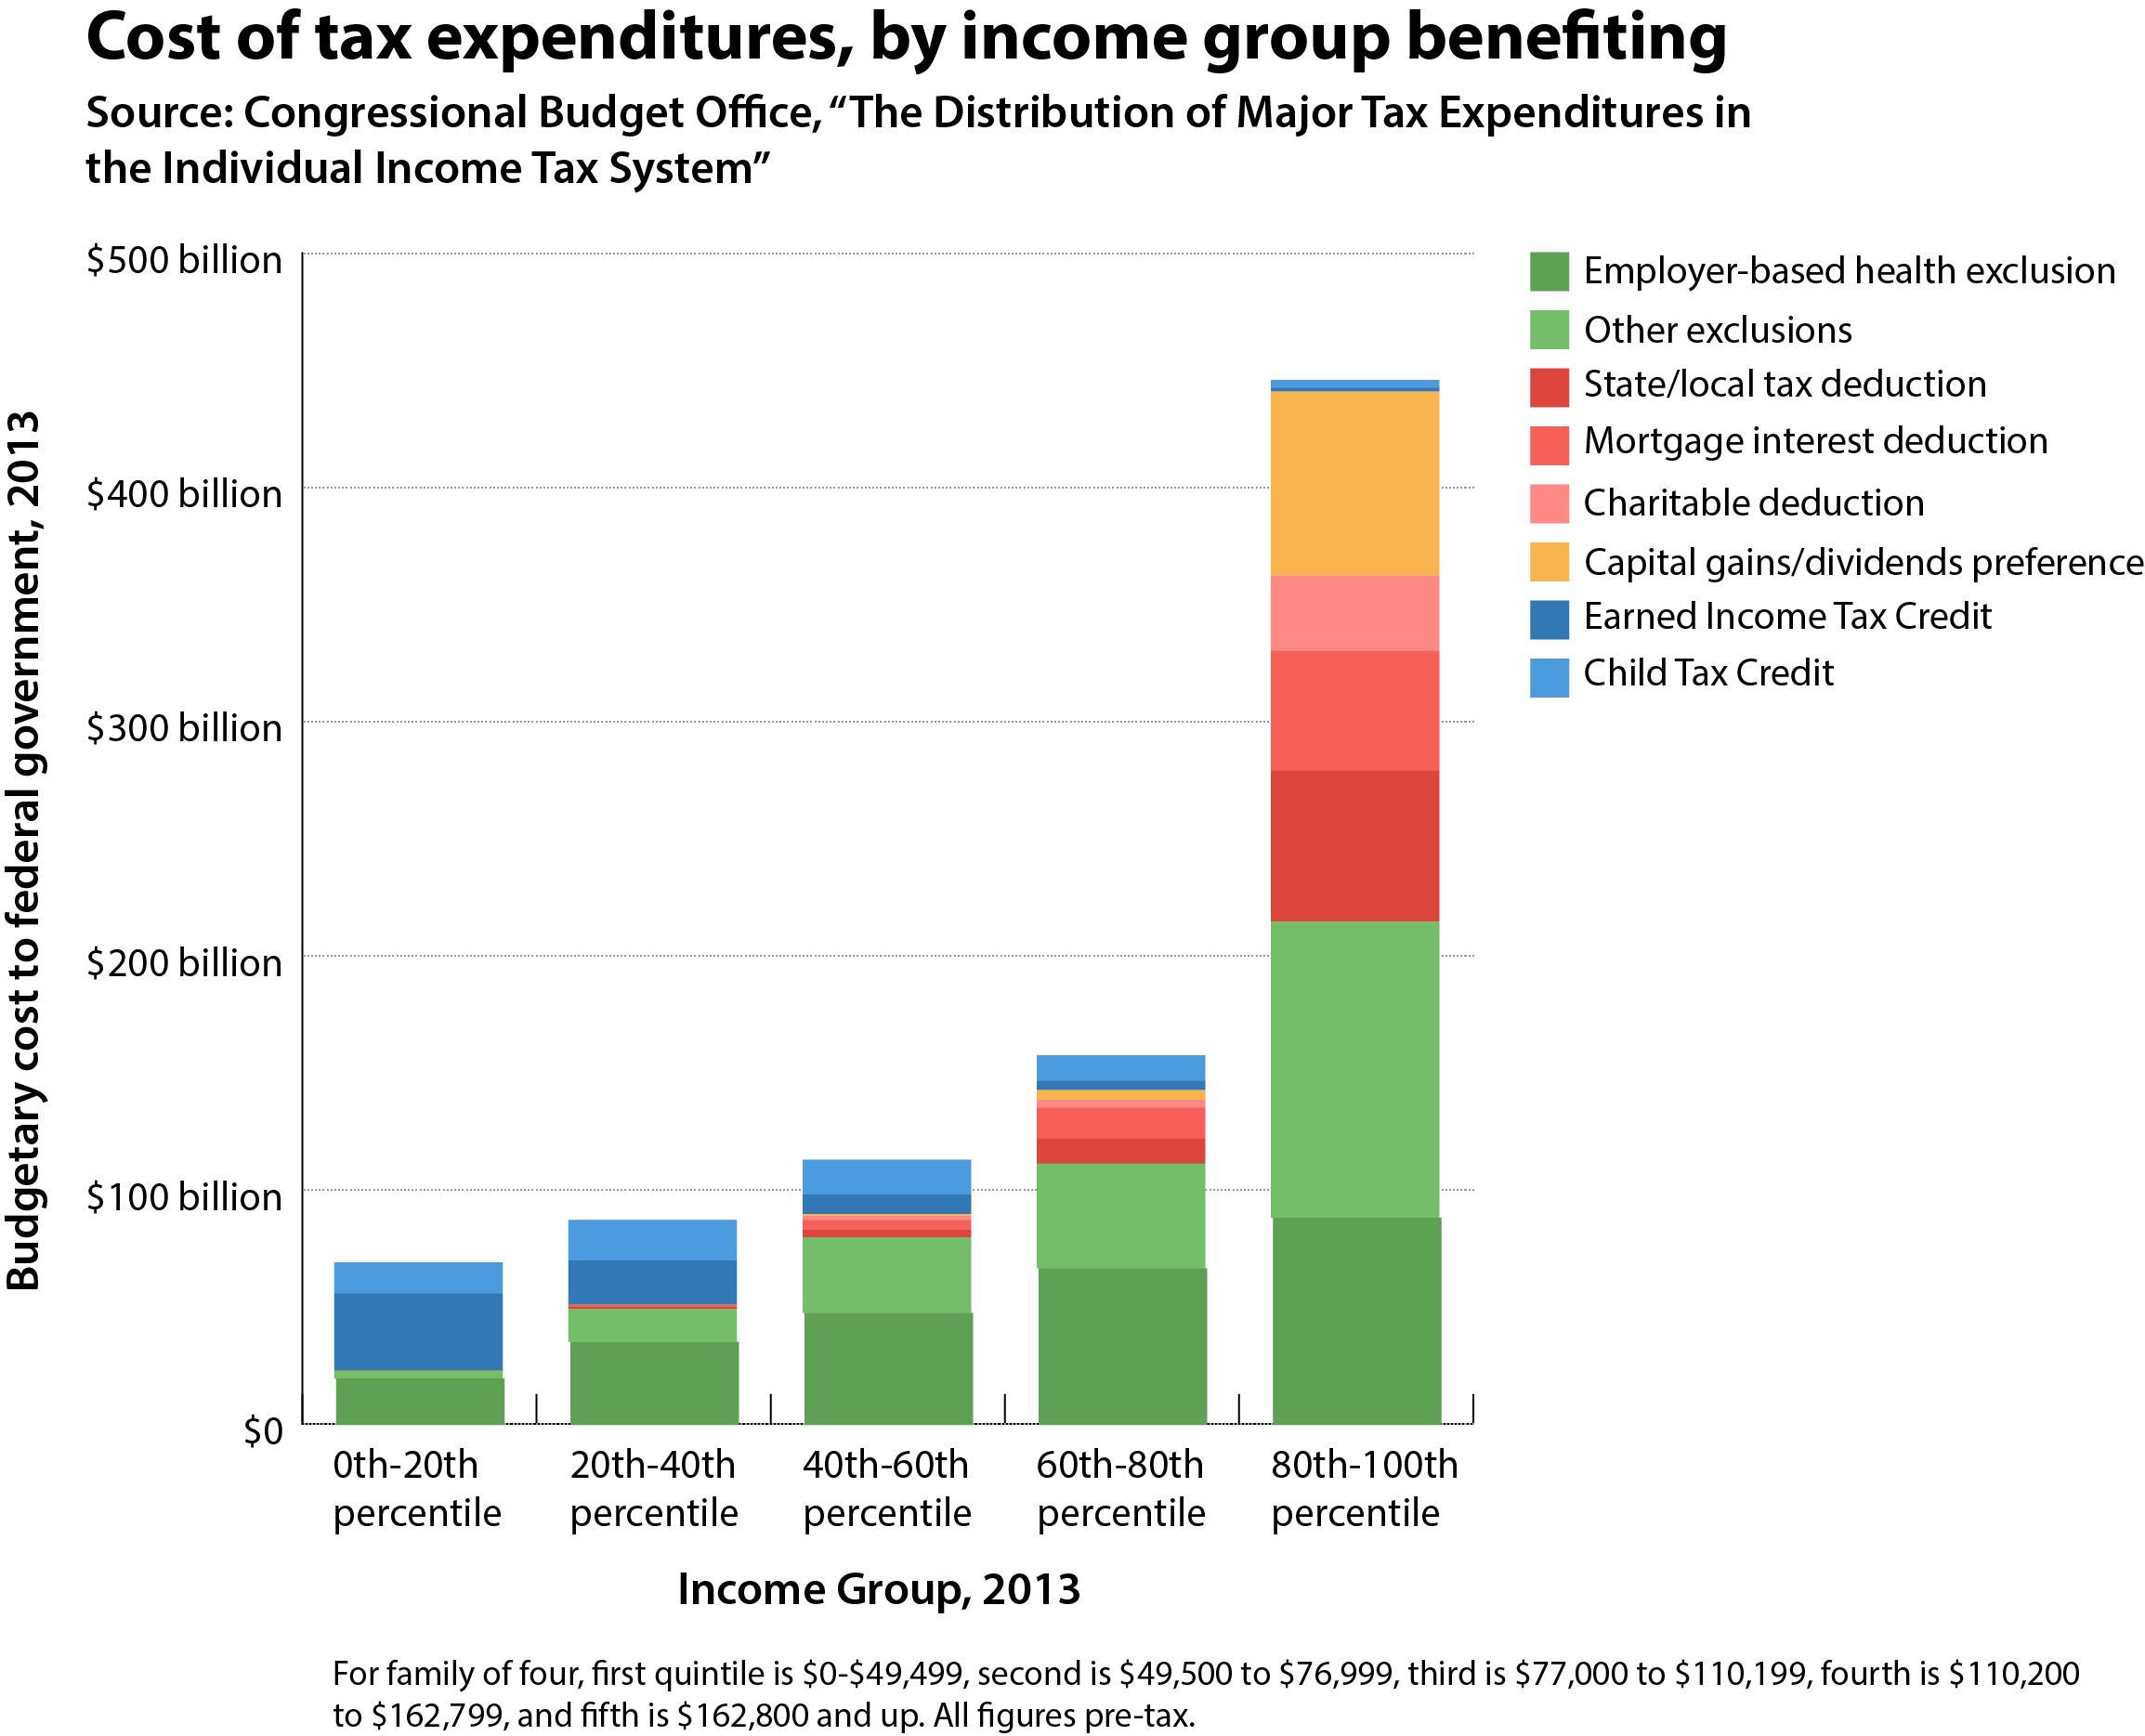 Who Gets Tax Breaks Tax Expenditures And Credits By Income Group